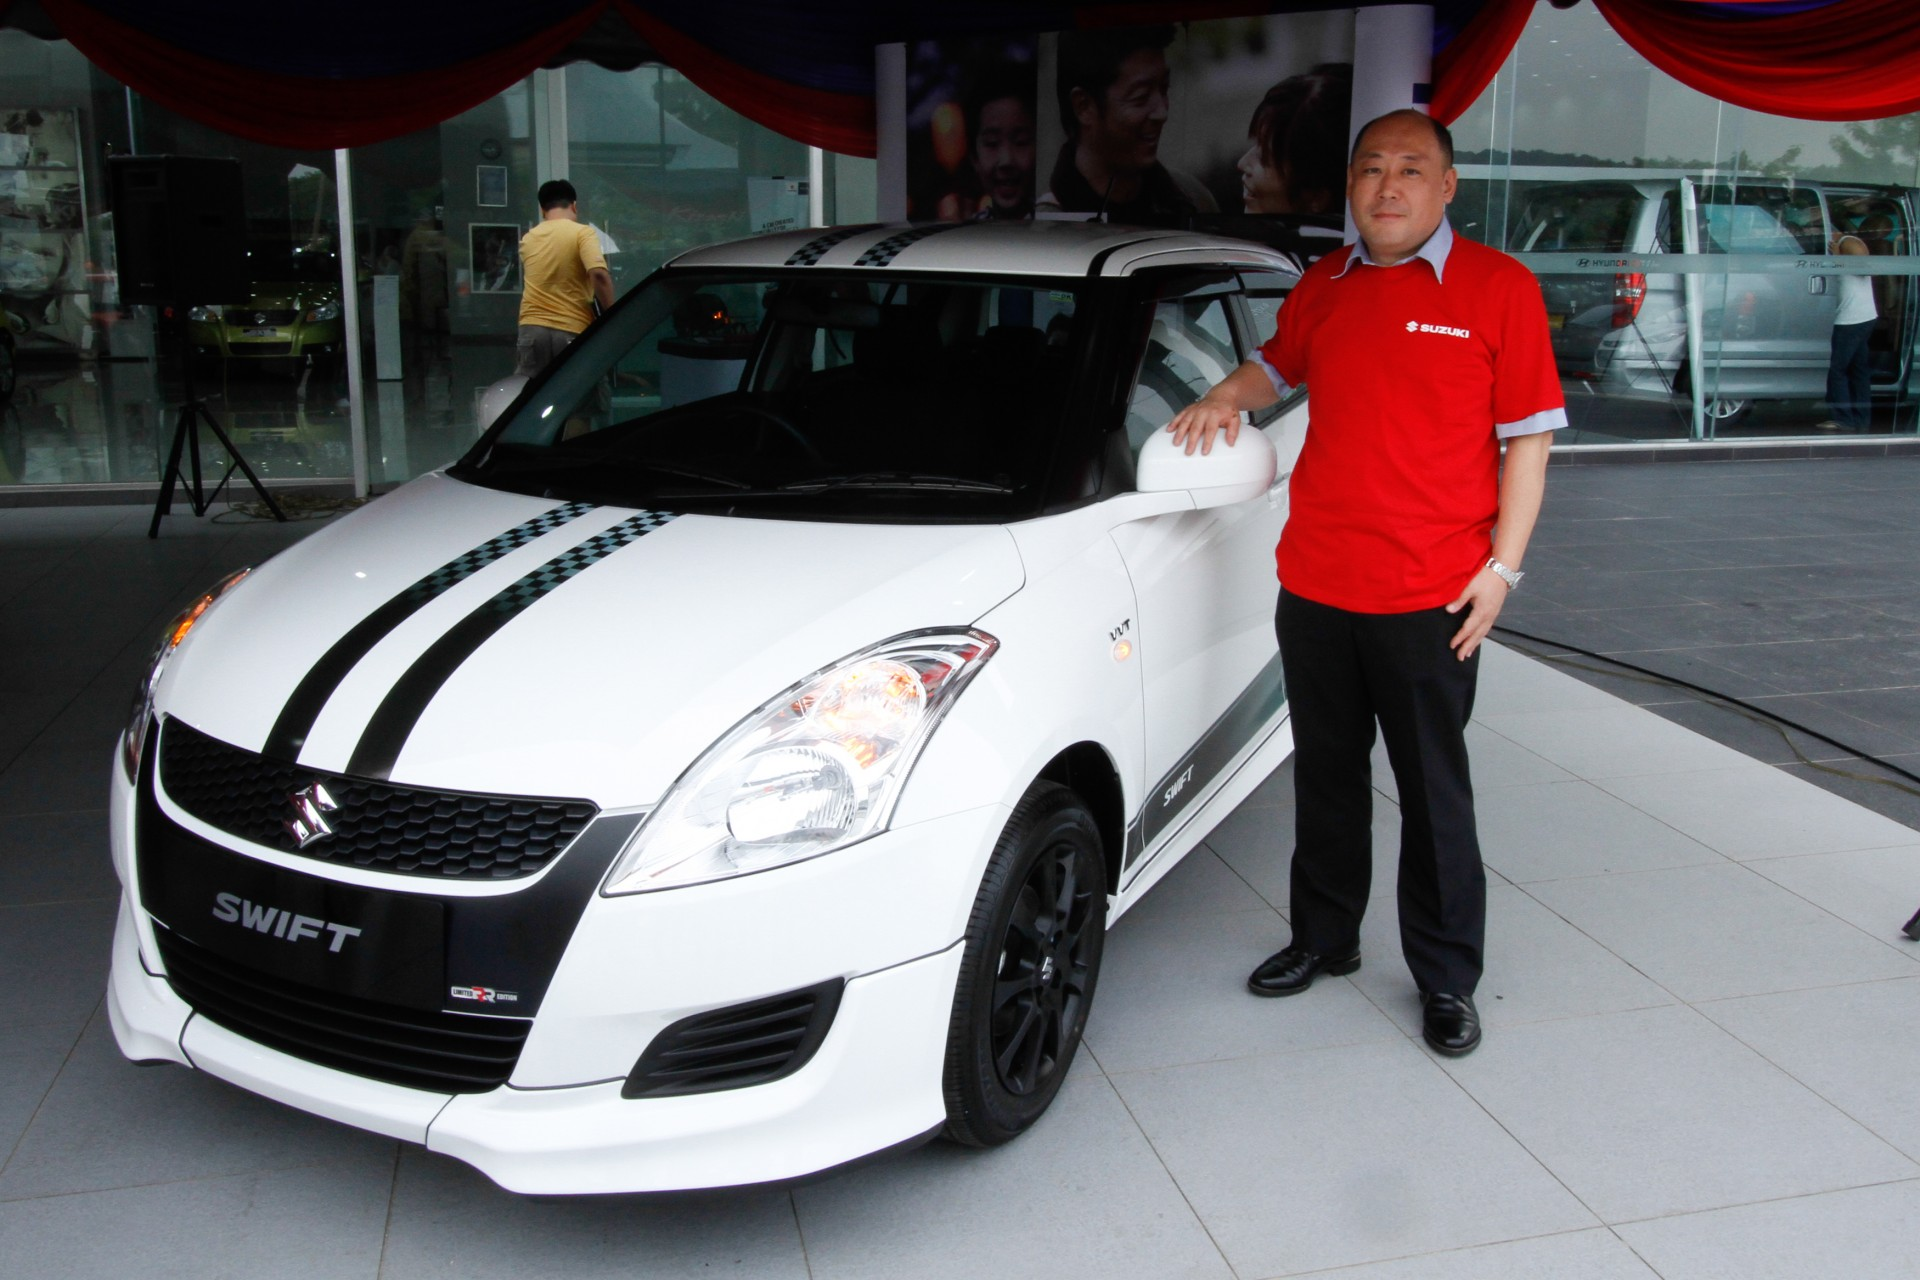 Swift car sticker designs - Suzuki M Sia Fetes Owners Introduces Swift Rr Limited Edition Autofreaks Com